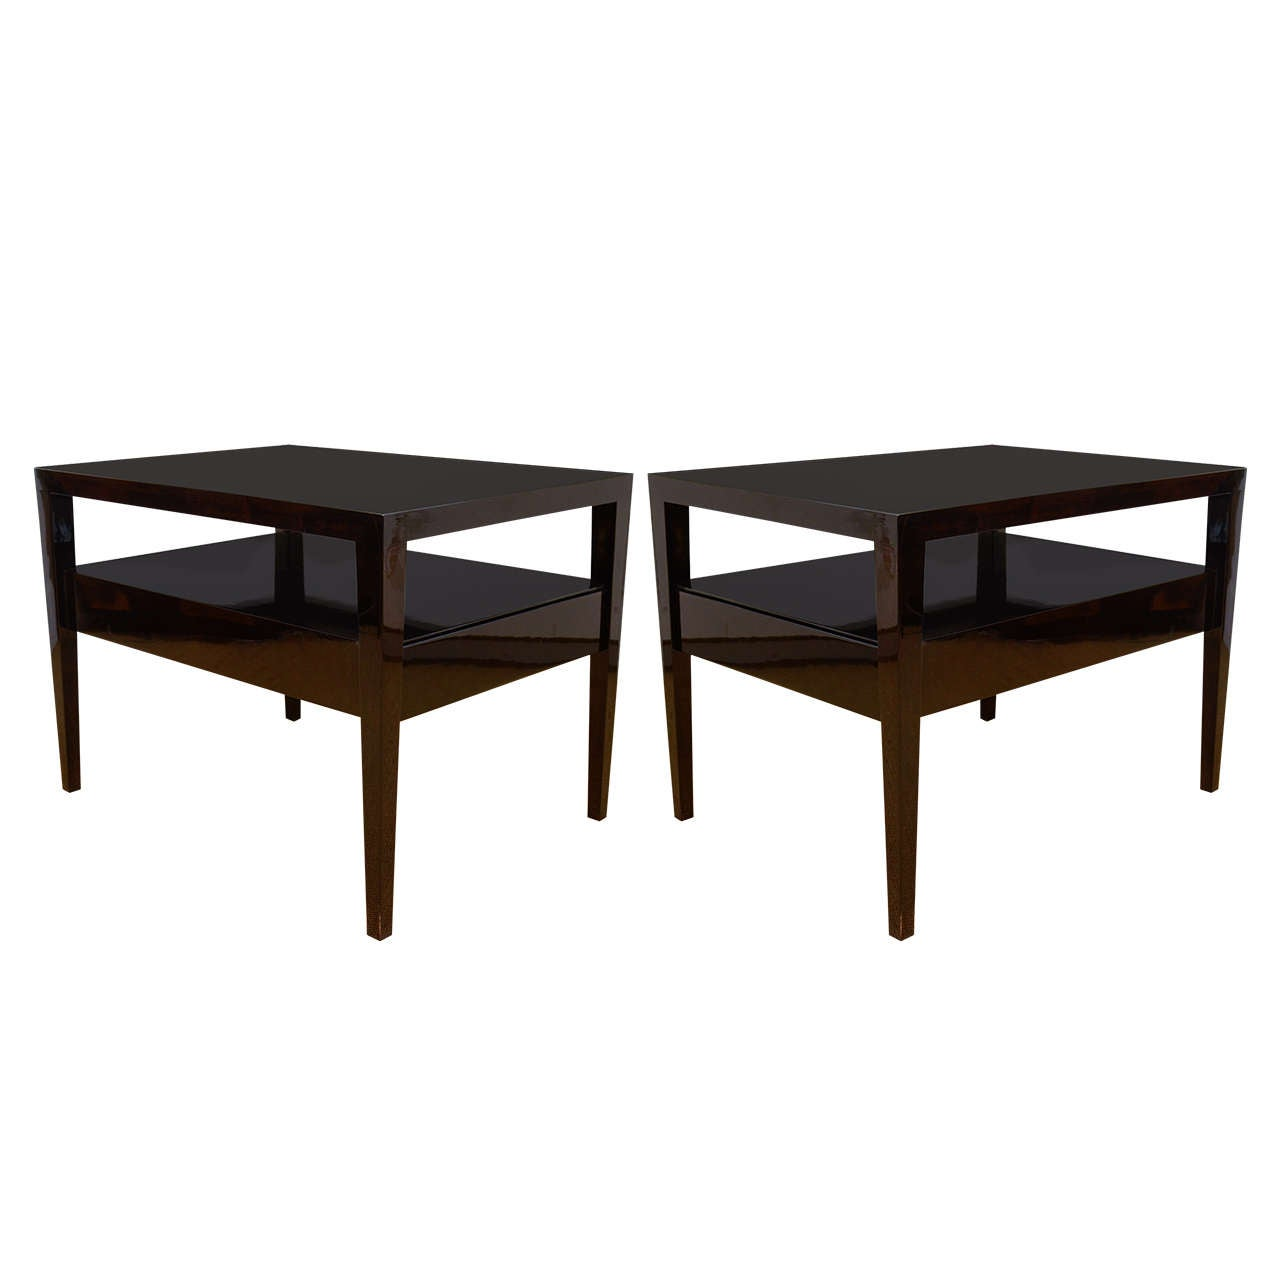 Pair Of Rectangular, Custom Made, Two Tier End Tables With A Drawer